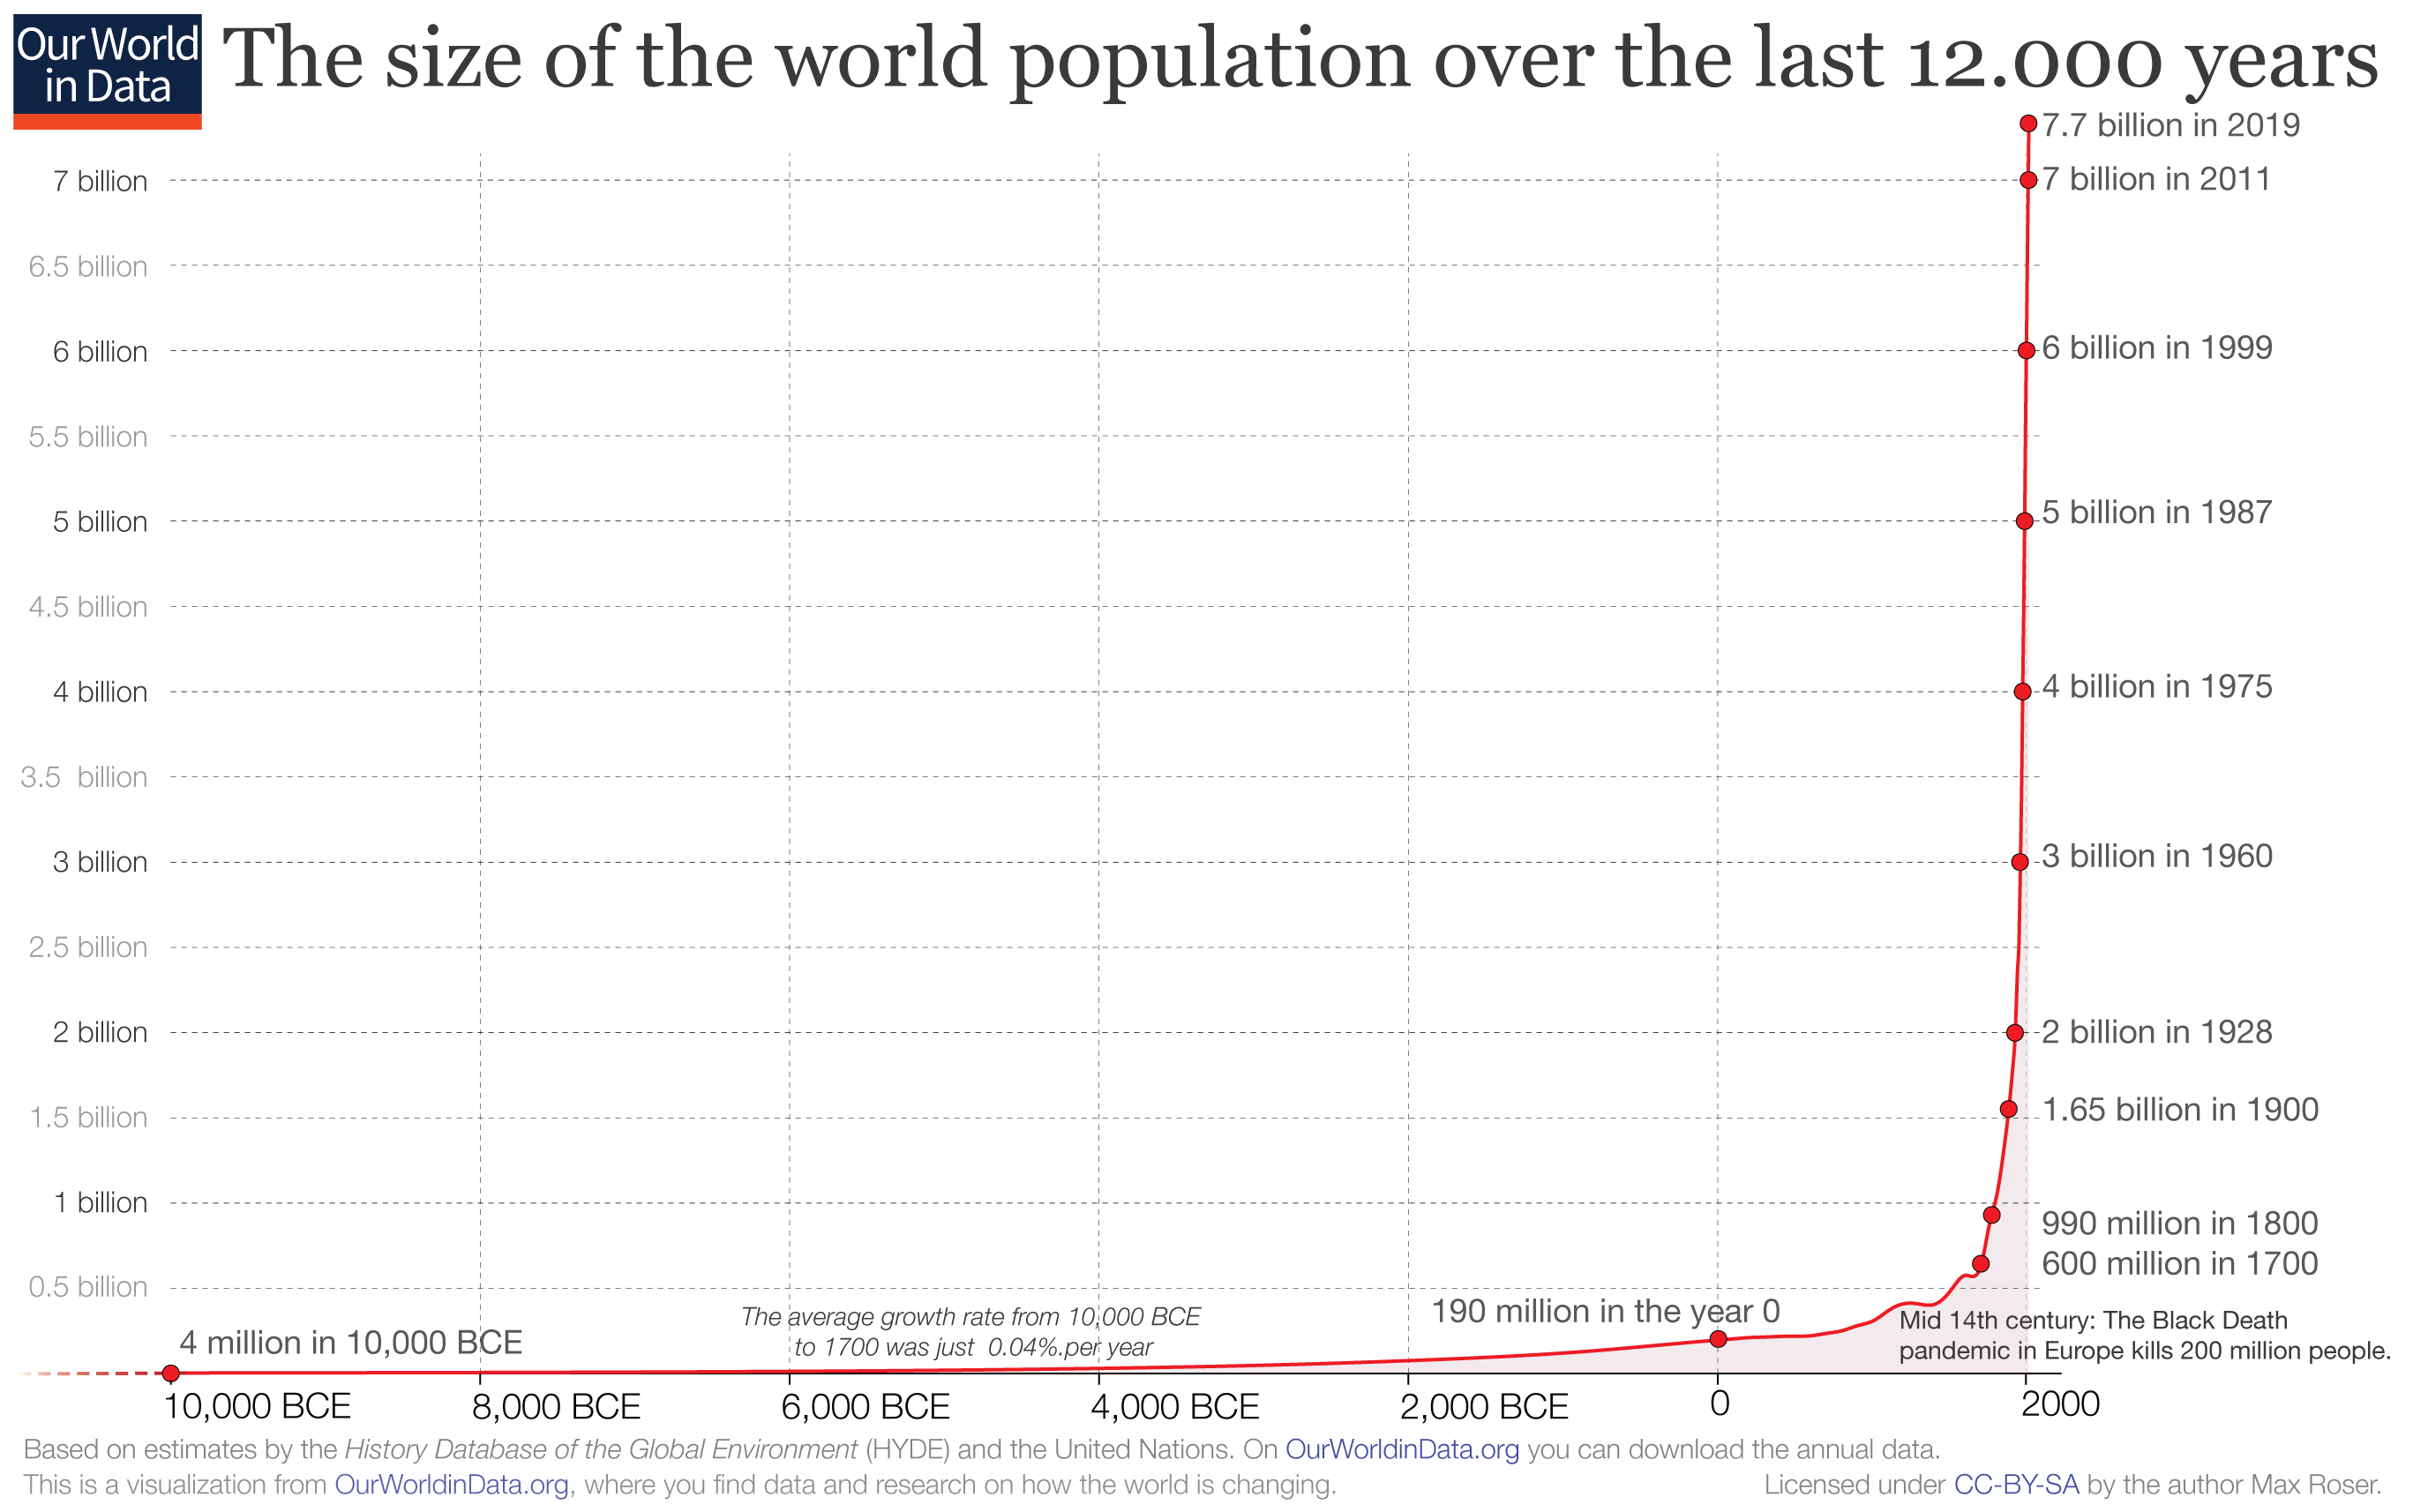 https://ourworldindata.org/uploads/2018/11/Annual-World-Population-since-10-thousand-BCE-for-OWID.png